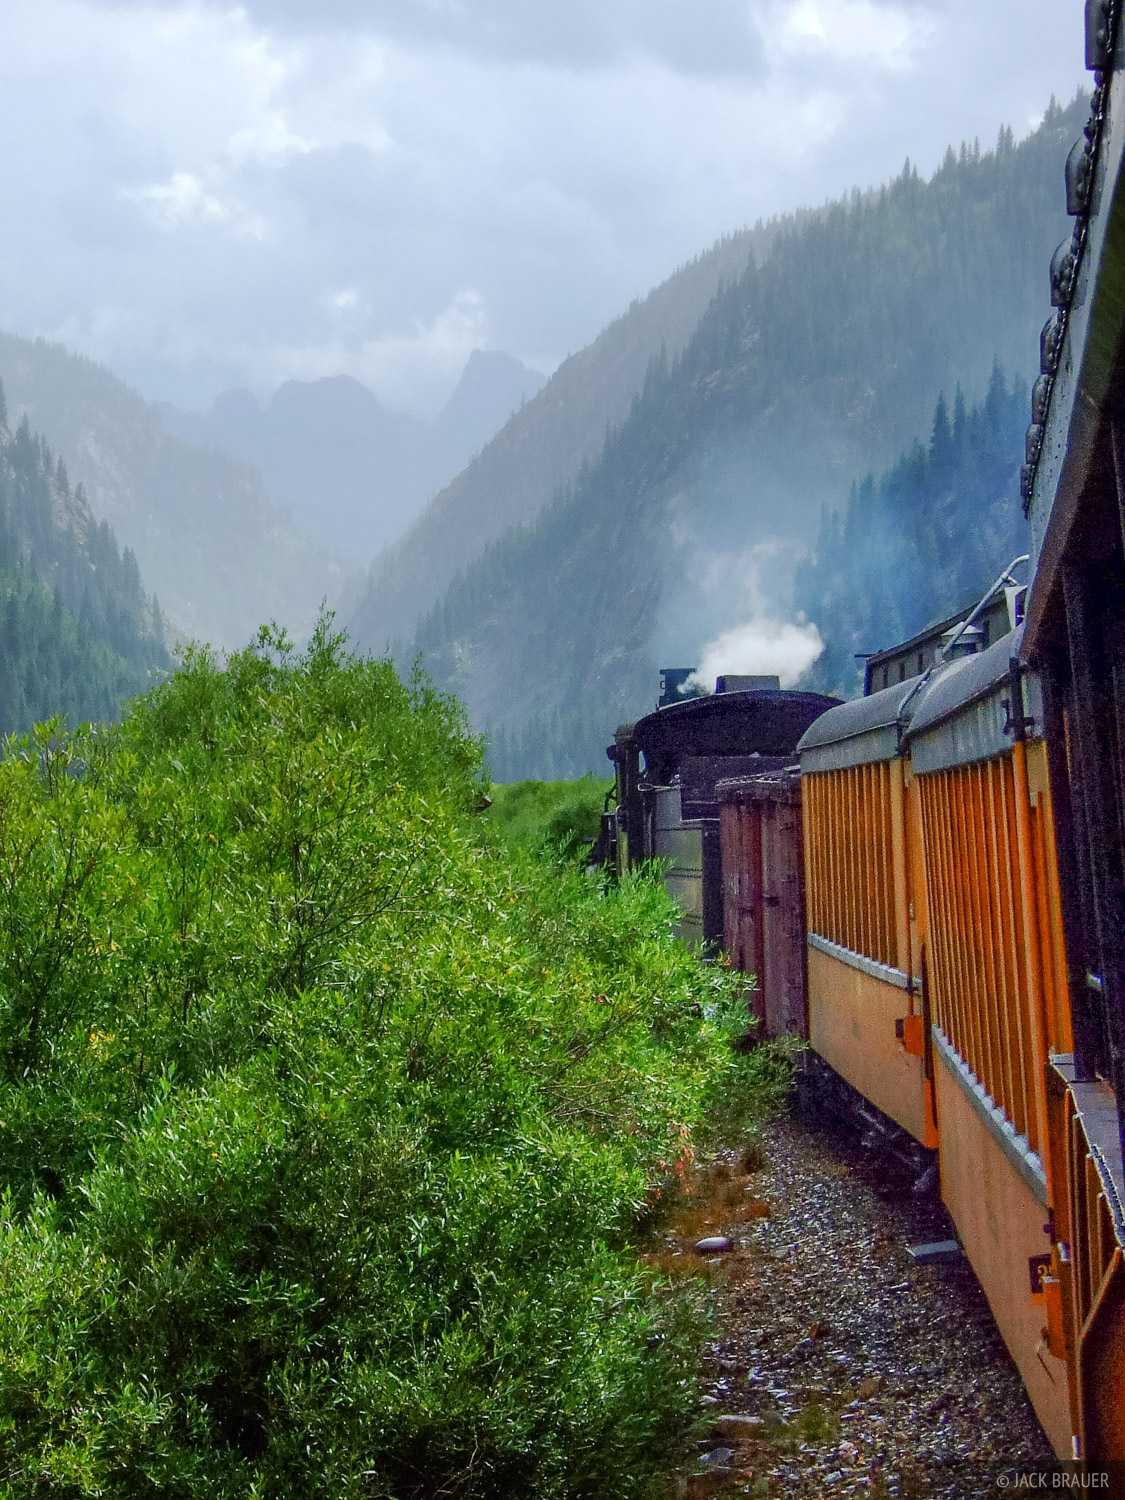 My ride into the mountains: the Durango & Silverton Narrow Gauge Railroad.  Originally built in 1881 to haul silver and gold...